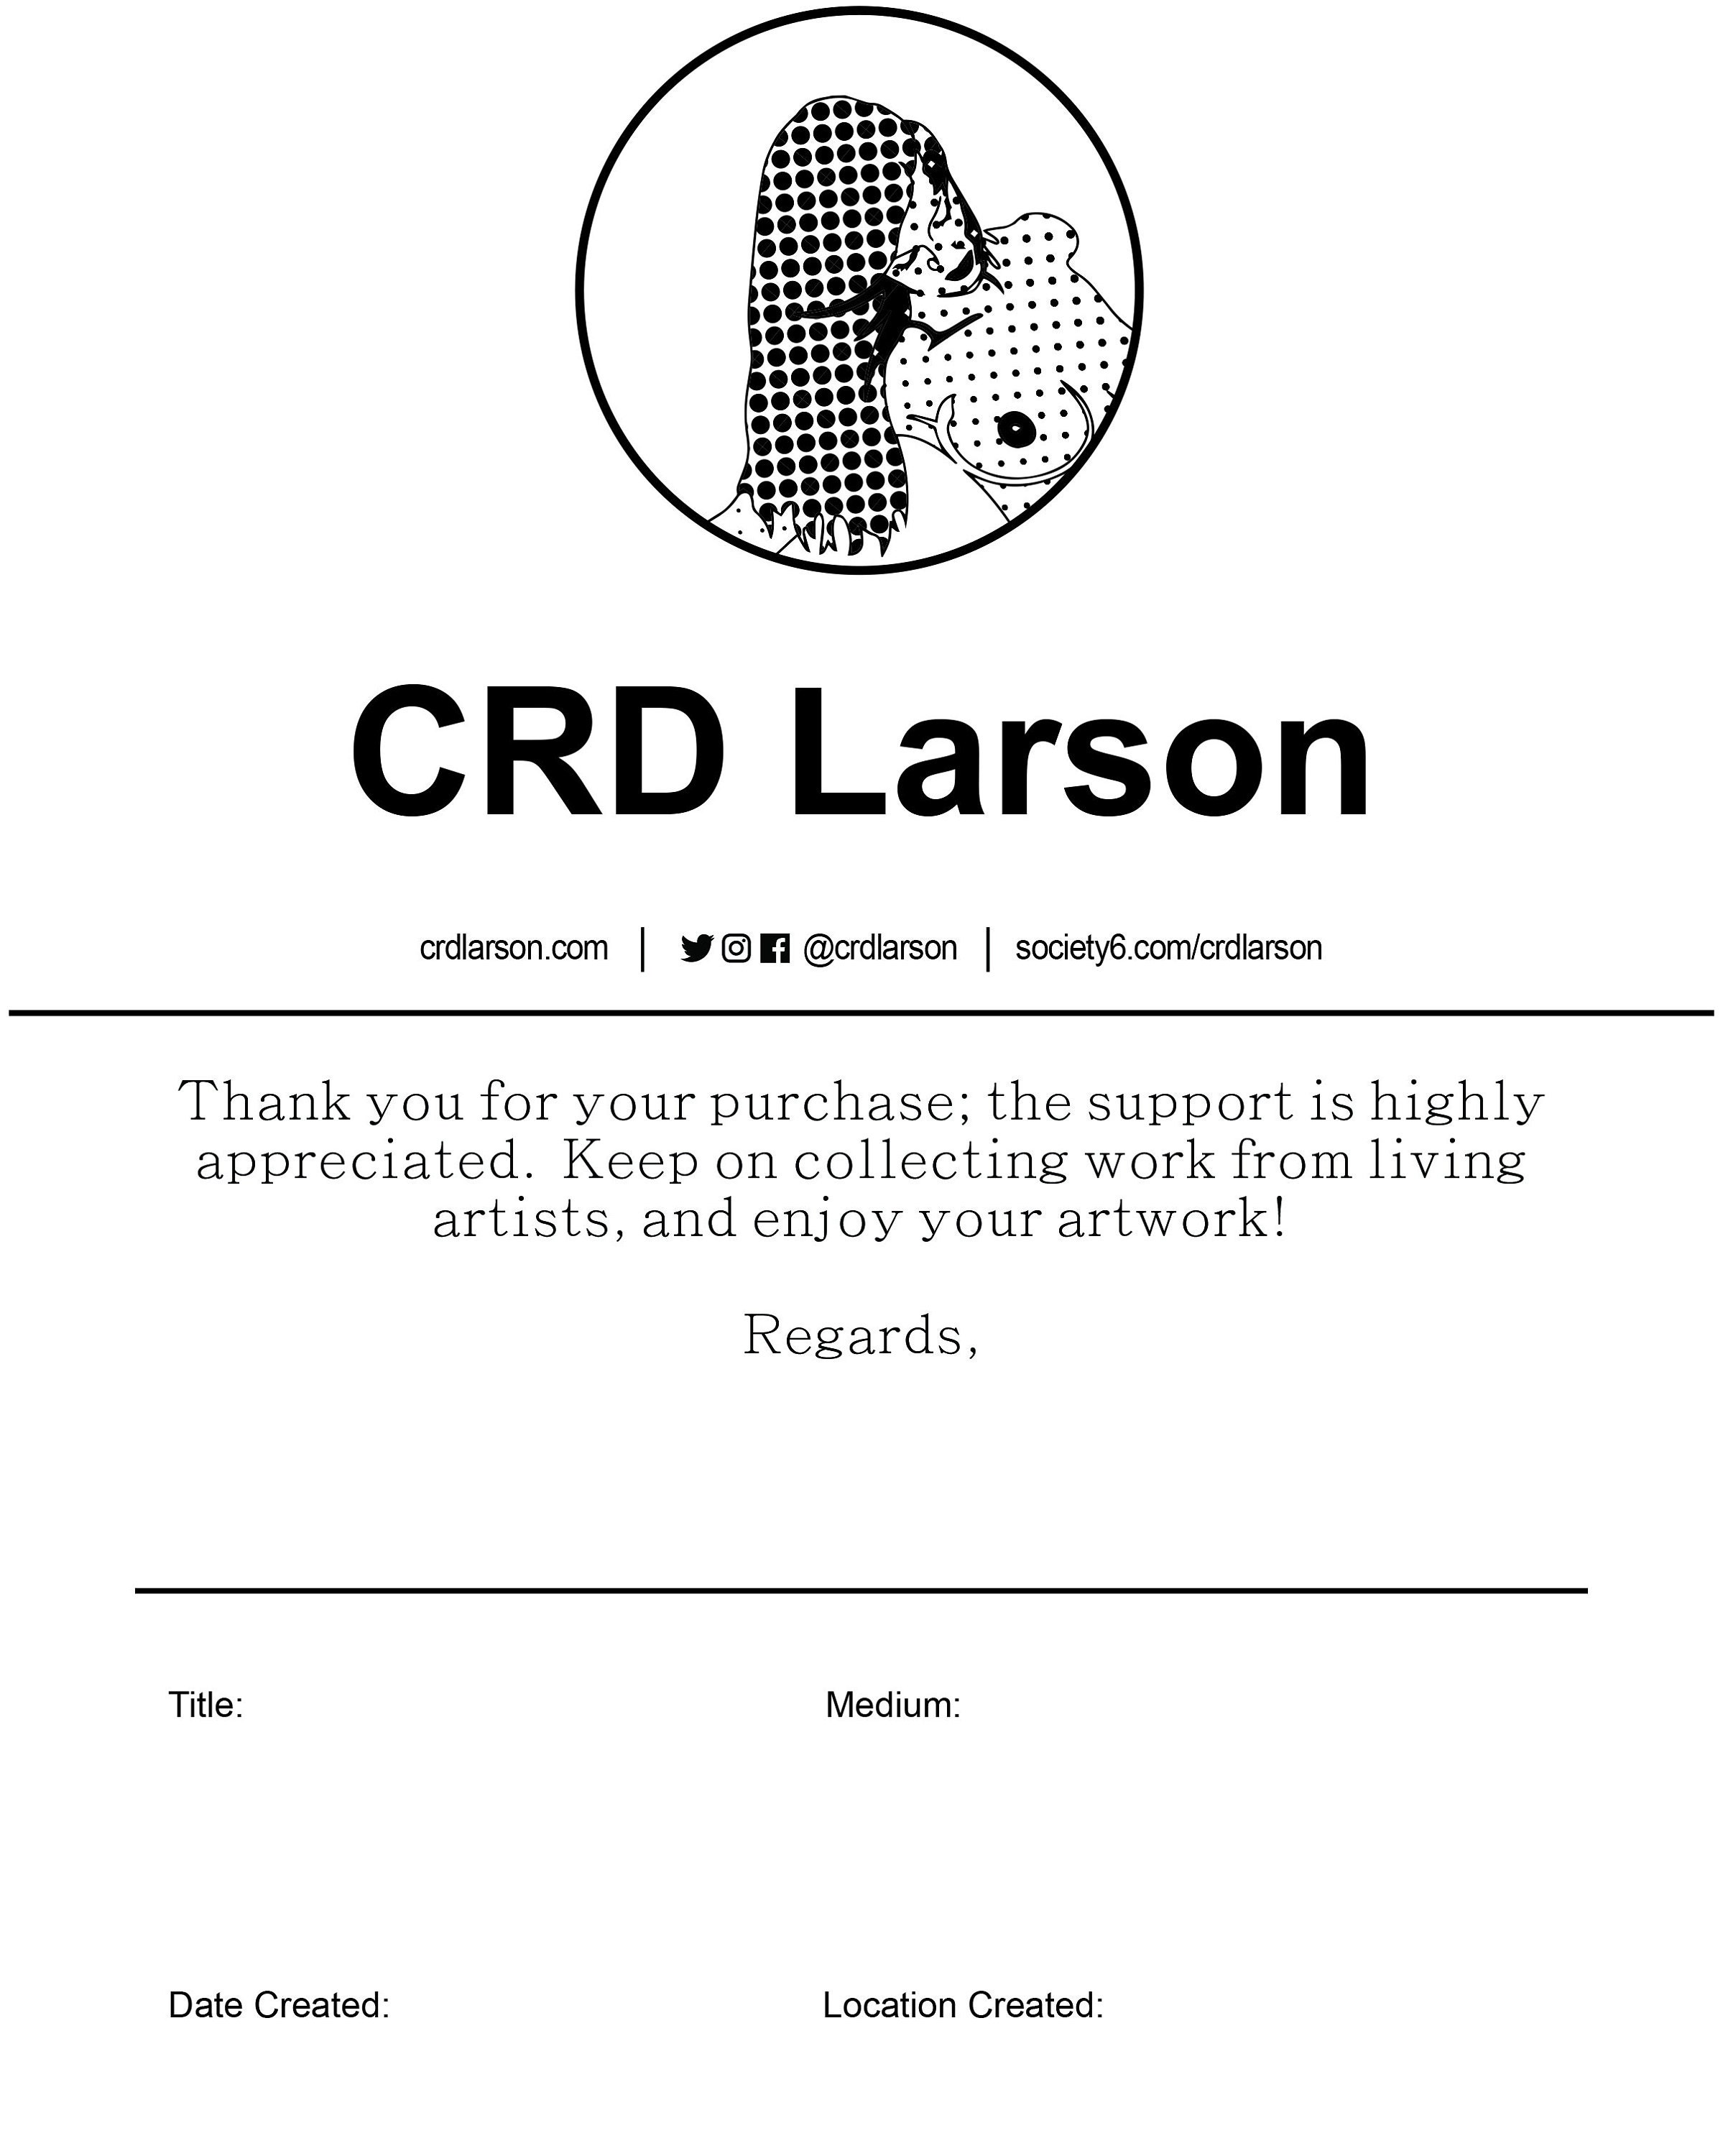 CRD Larson Certificate of Authenticity